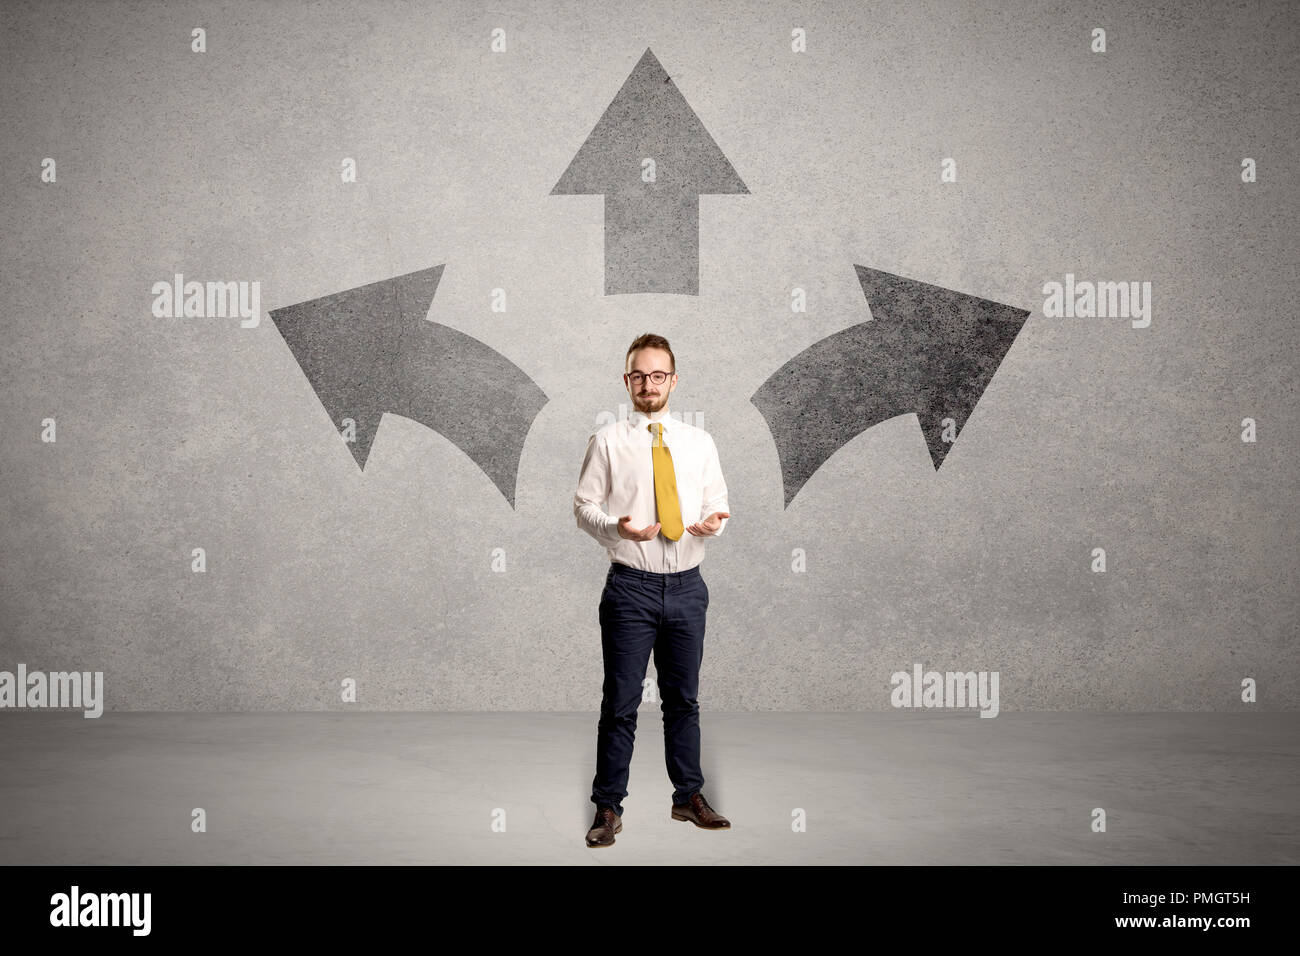 Charming businessman in doubt, choosing from three directions in front of a grey wall  - Stock Image